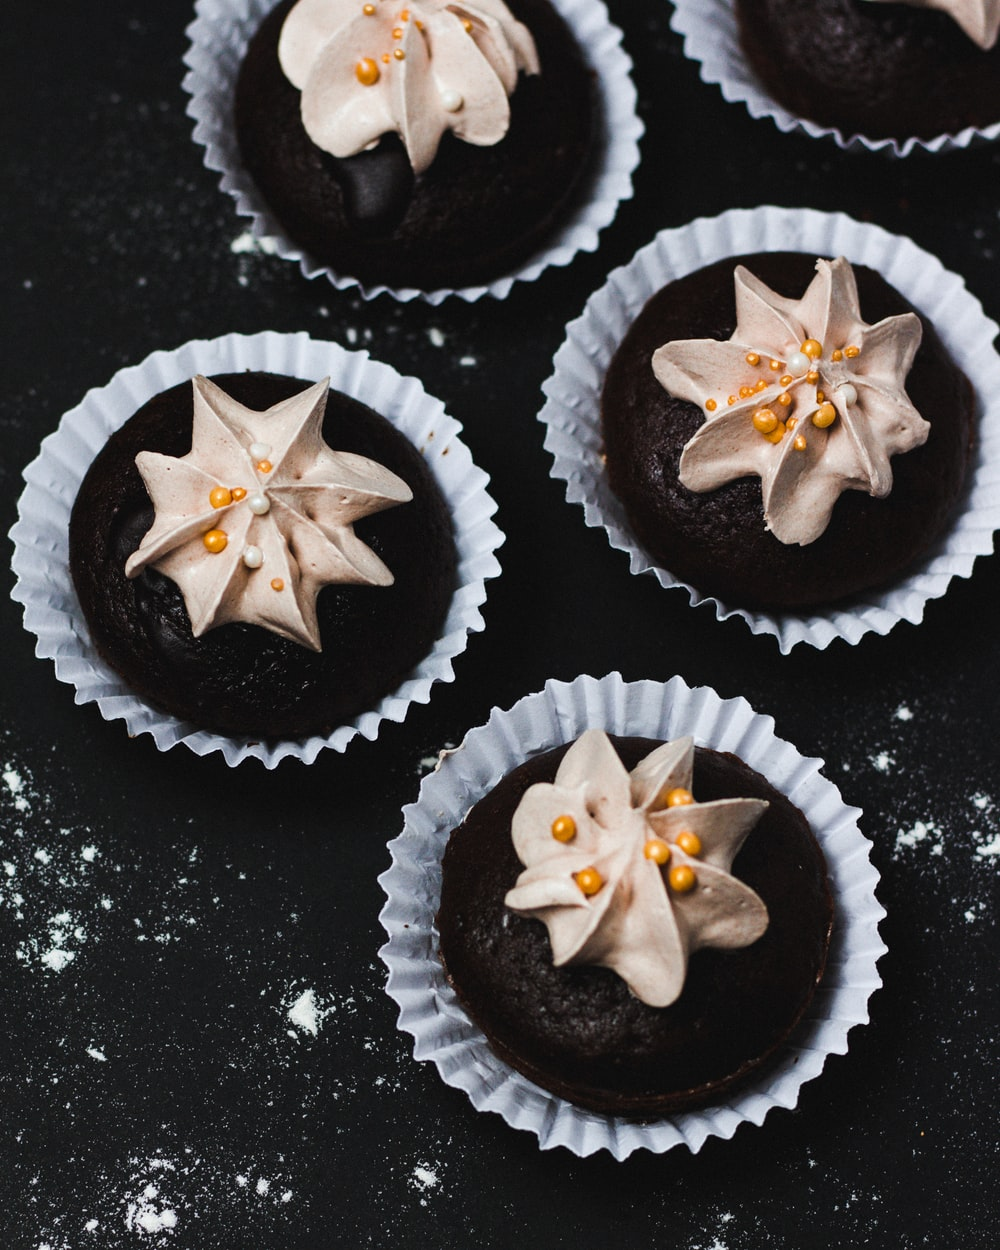 cupcakes with icings on black surface